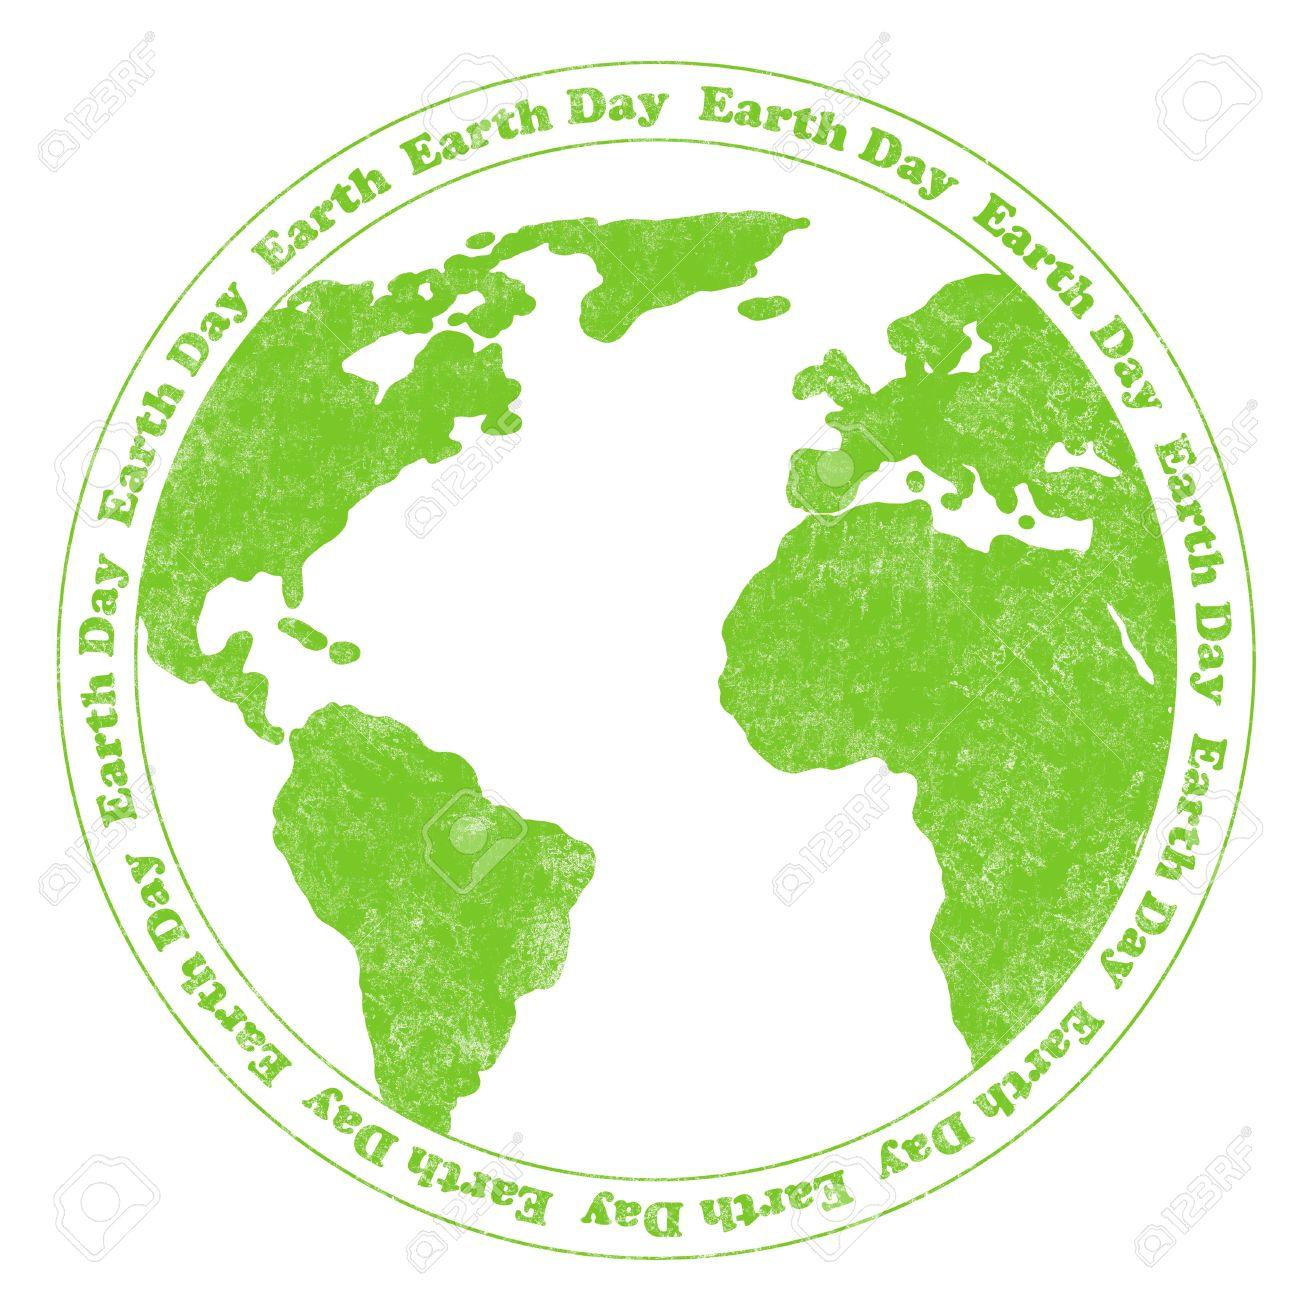 Rubber Stamp Illustration With World Map And Circular Earth Day